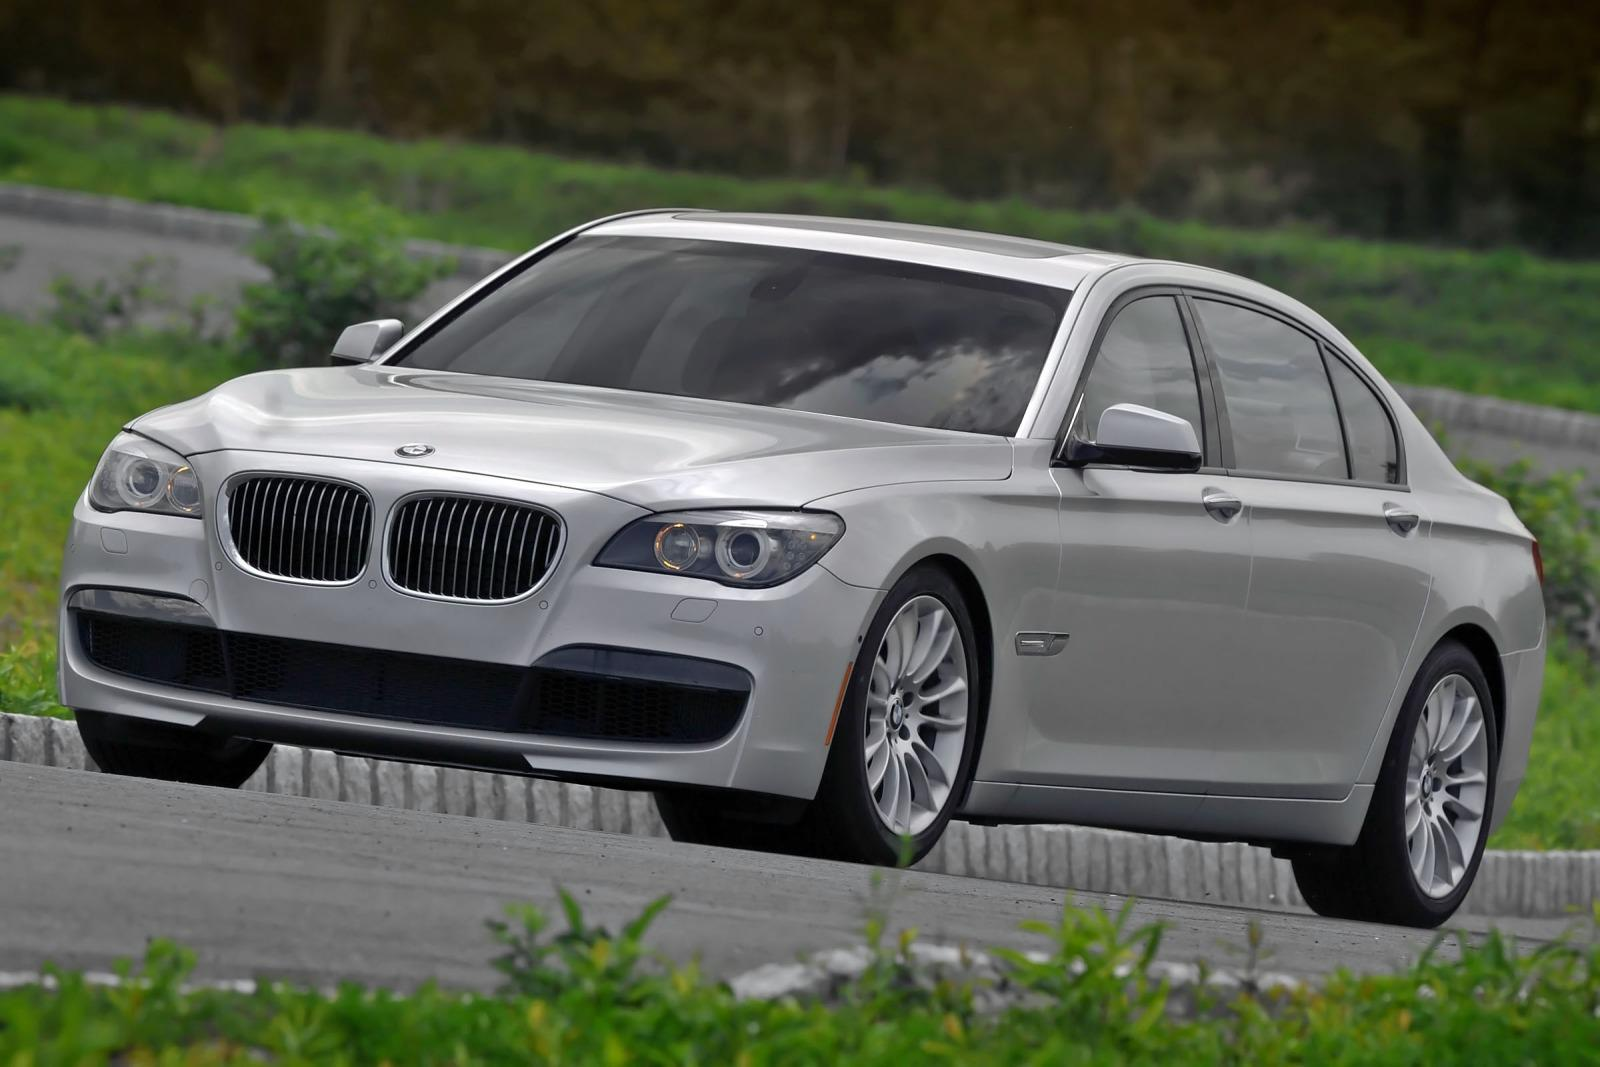 2012 bmw 7 series information and photos zombiedrive. Black Bedroom Furniture Sets. Home Design Ideas